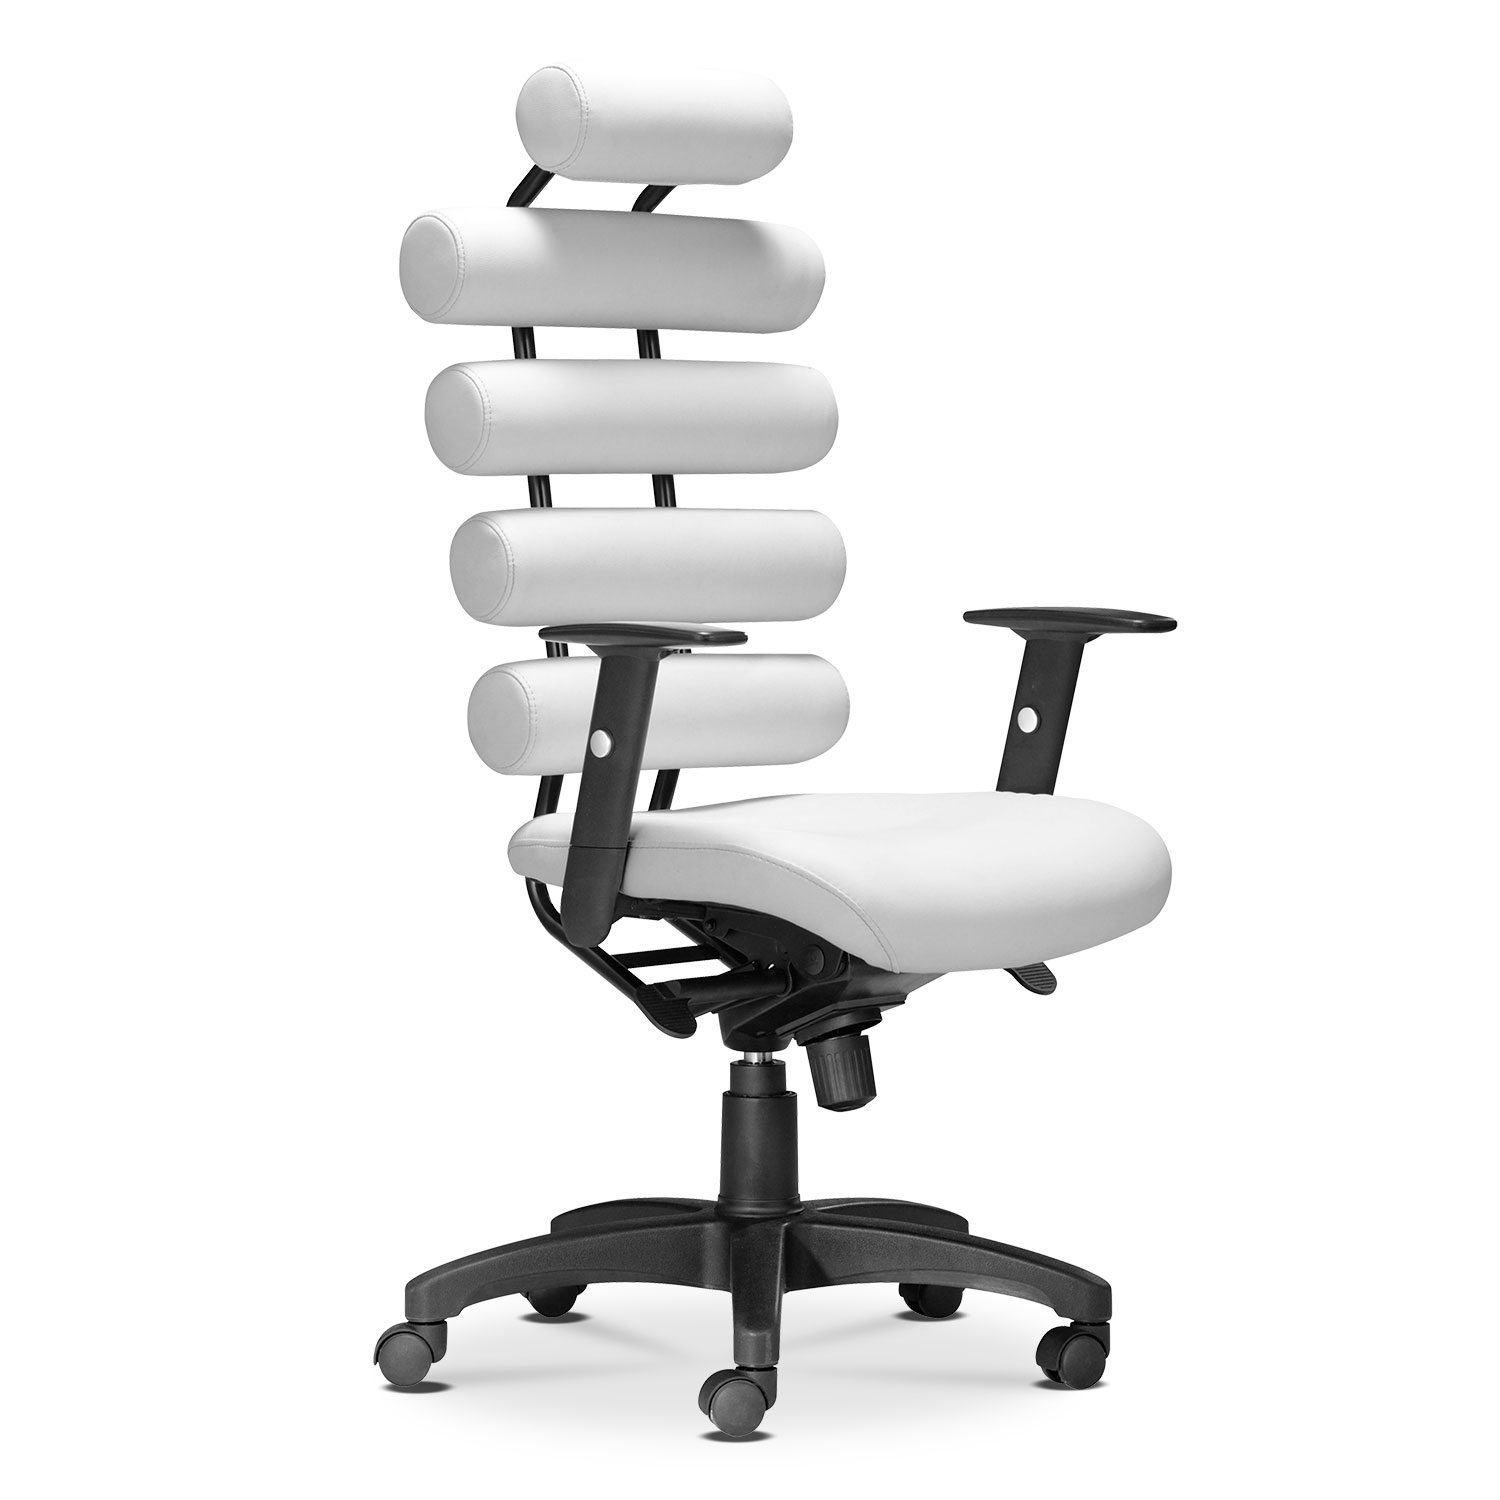 Home Office Furniture - Norton Office Arm Chair - White